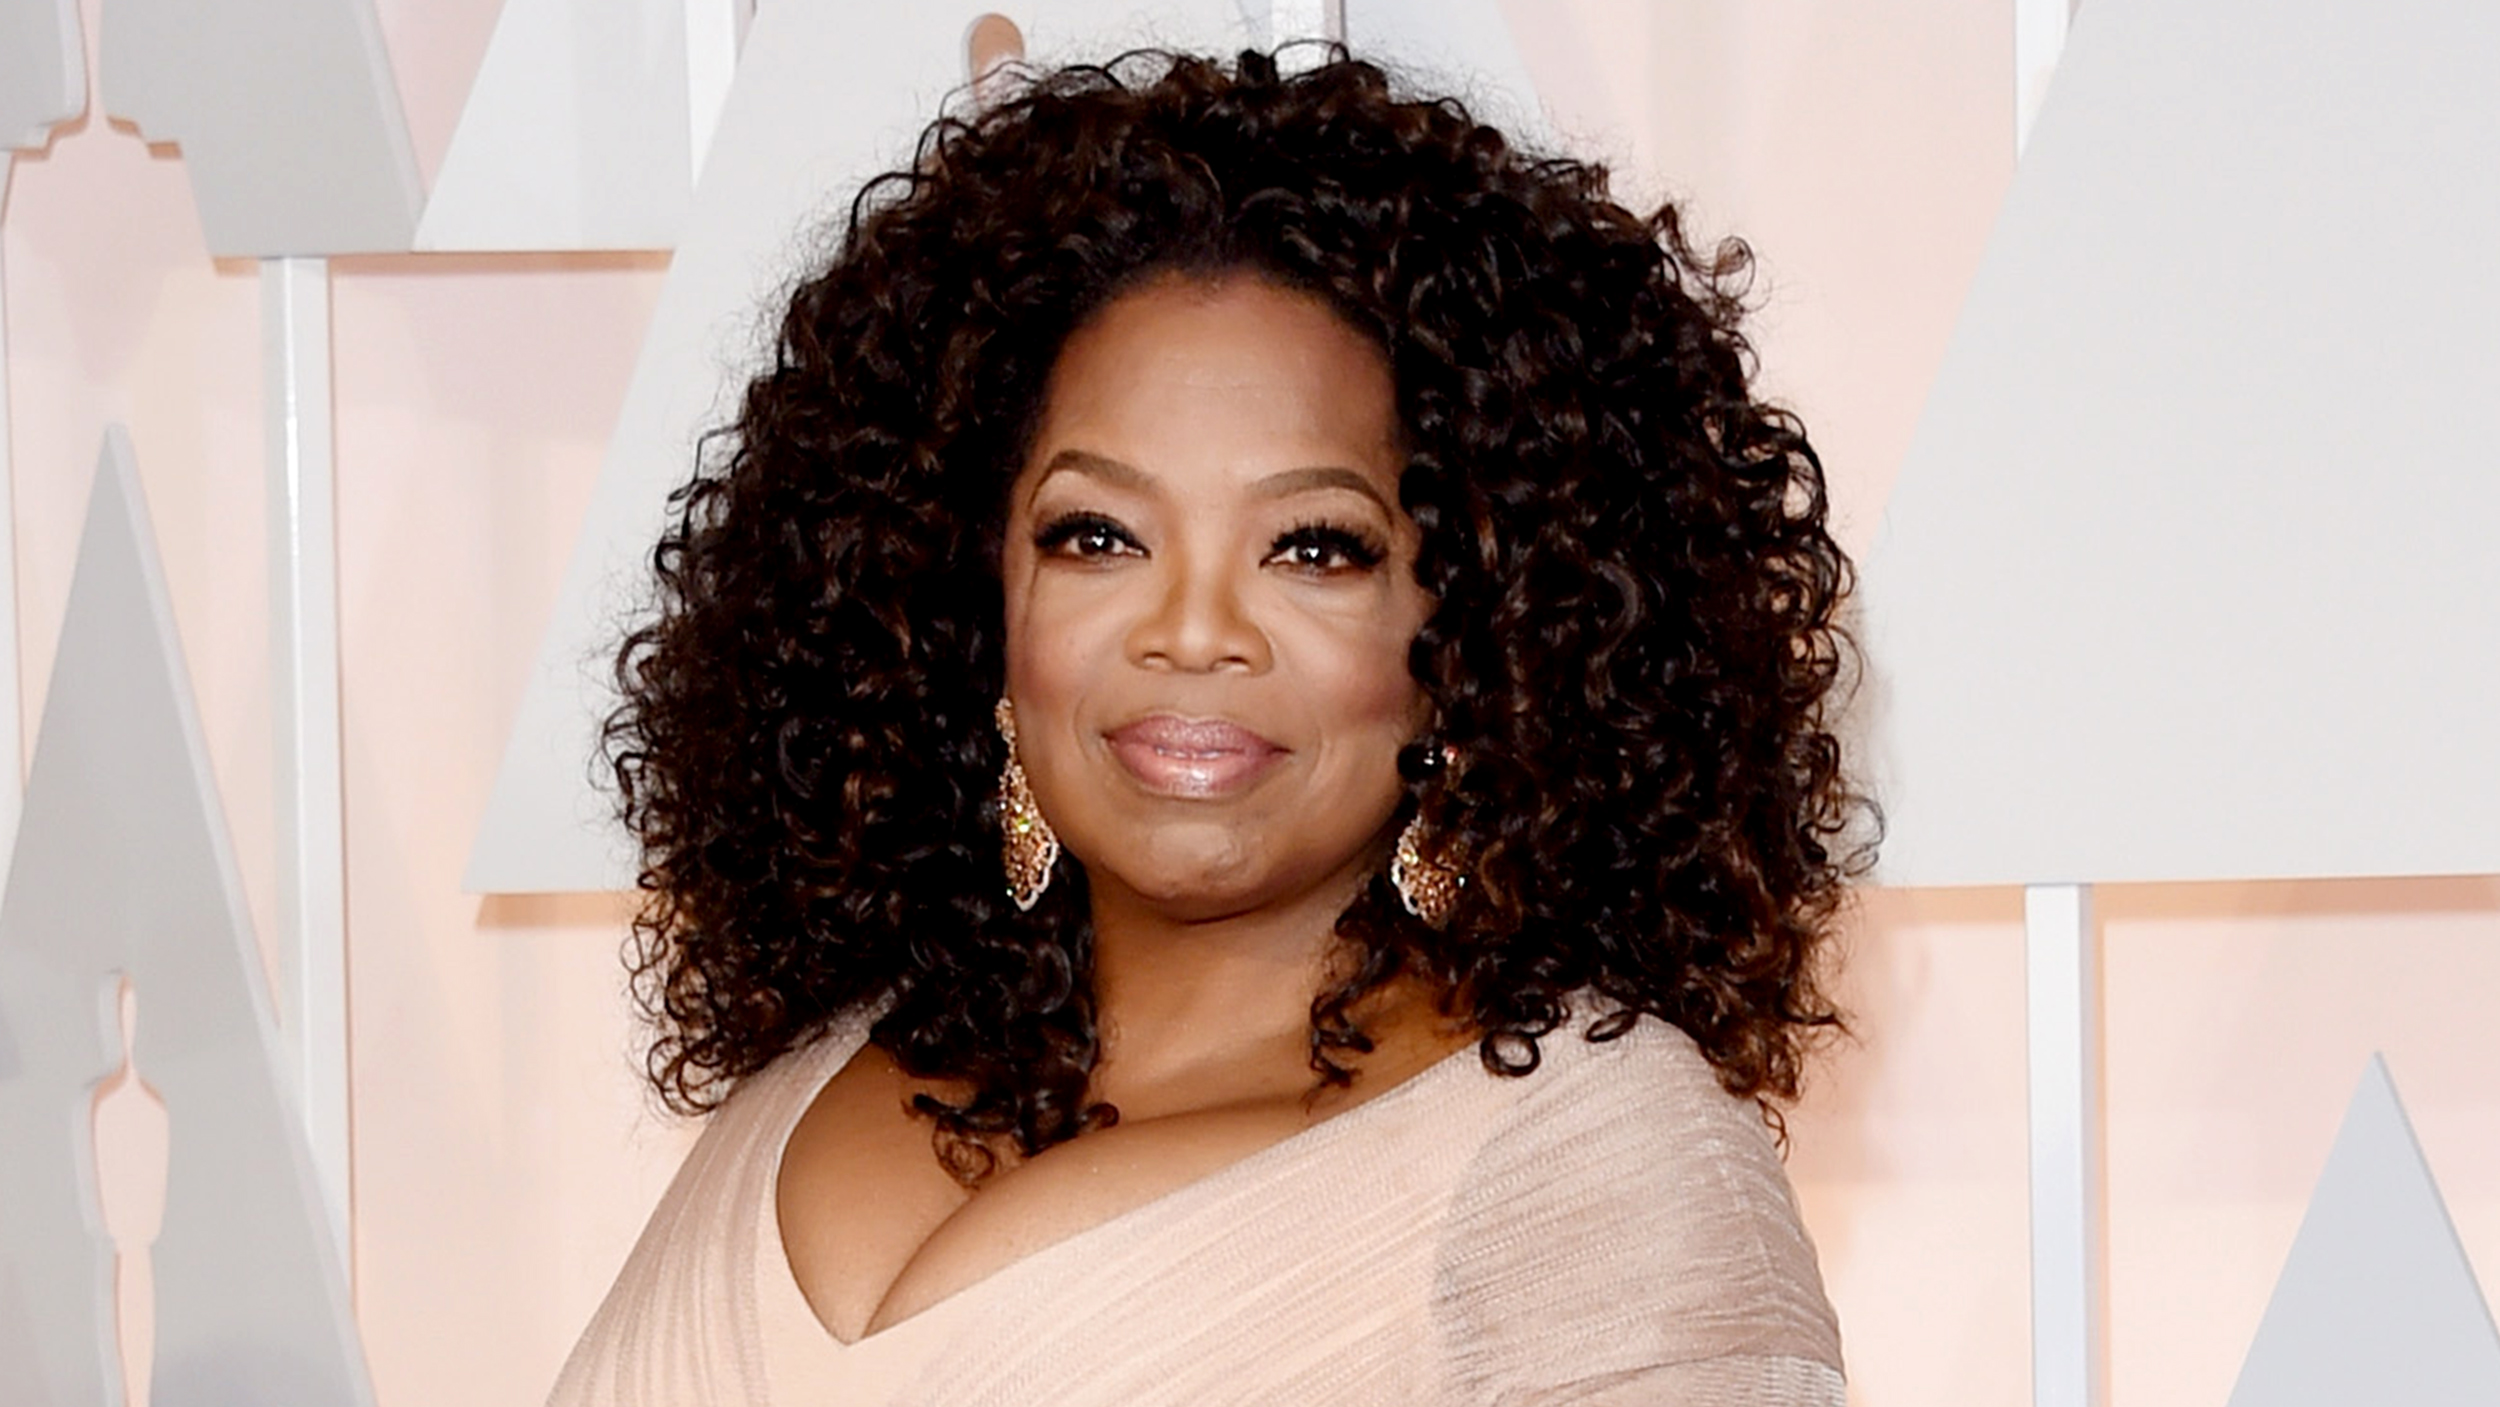 Oprah Winfrey Partners With Weight Watchers TODAYcom Oprah Winfrey Today  Tease Abbefbdeeaadc Message Hope Can Oprahs Weight Watchers Investment Help Us Lose T